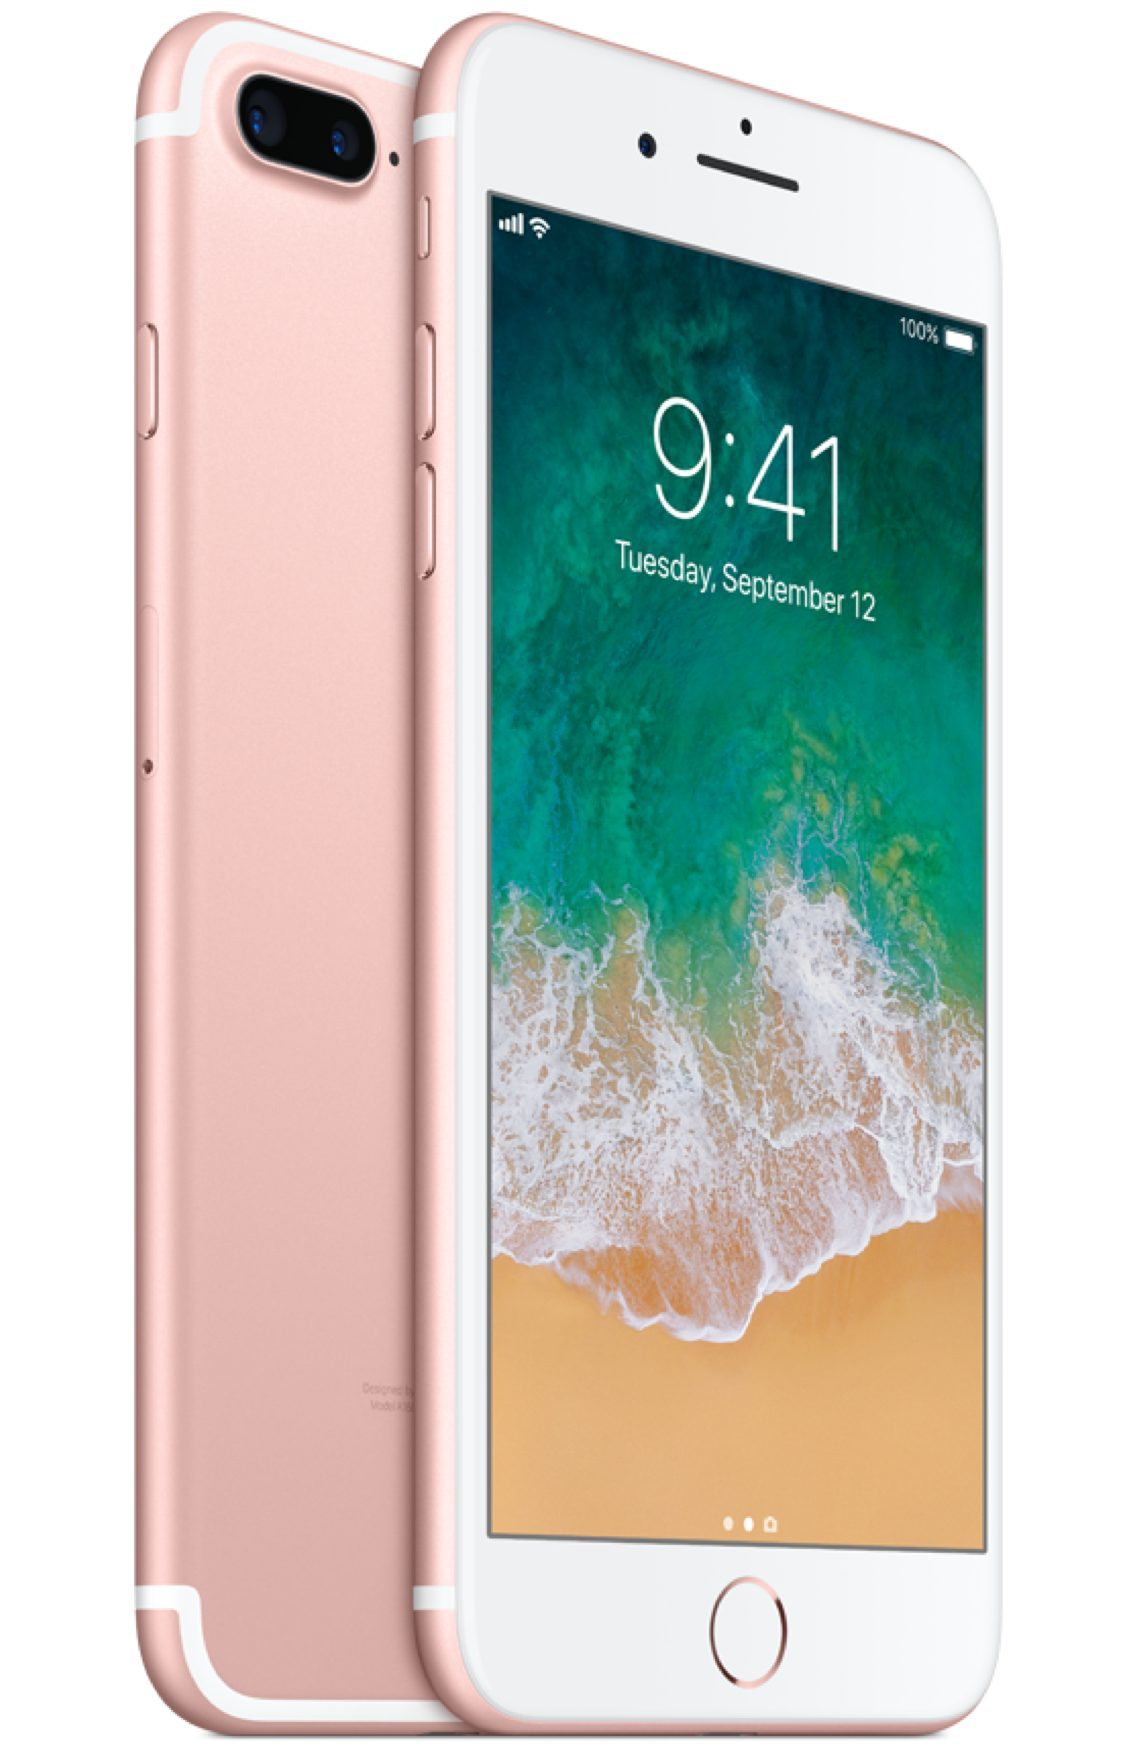 Wombat Reserve Apple Iphone 7 Plus Verizon Unlocked Rose Gold 128gb